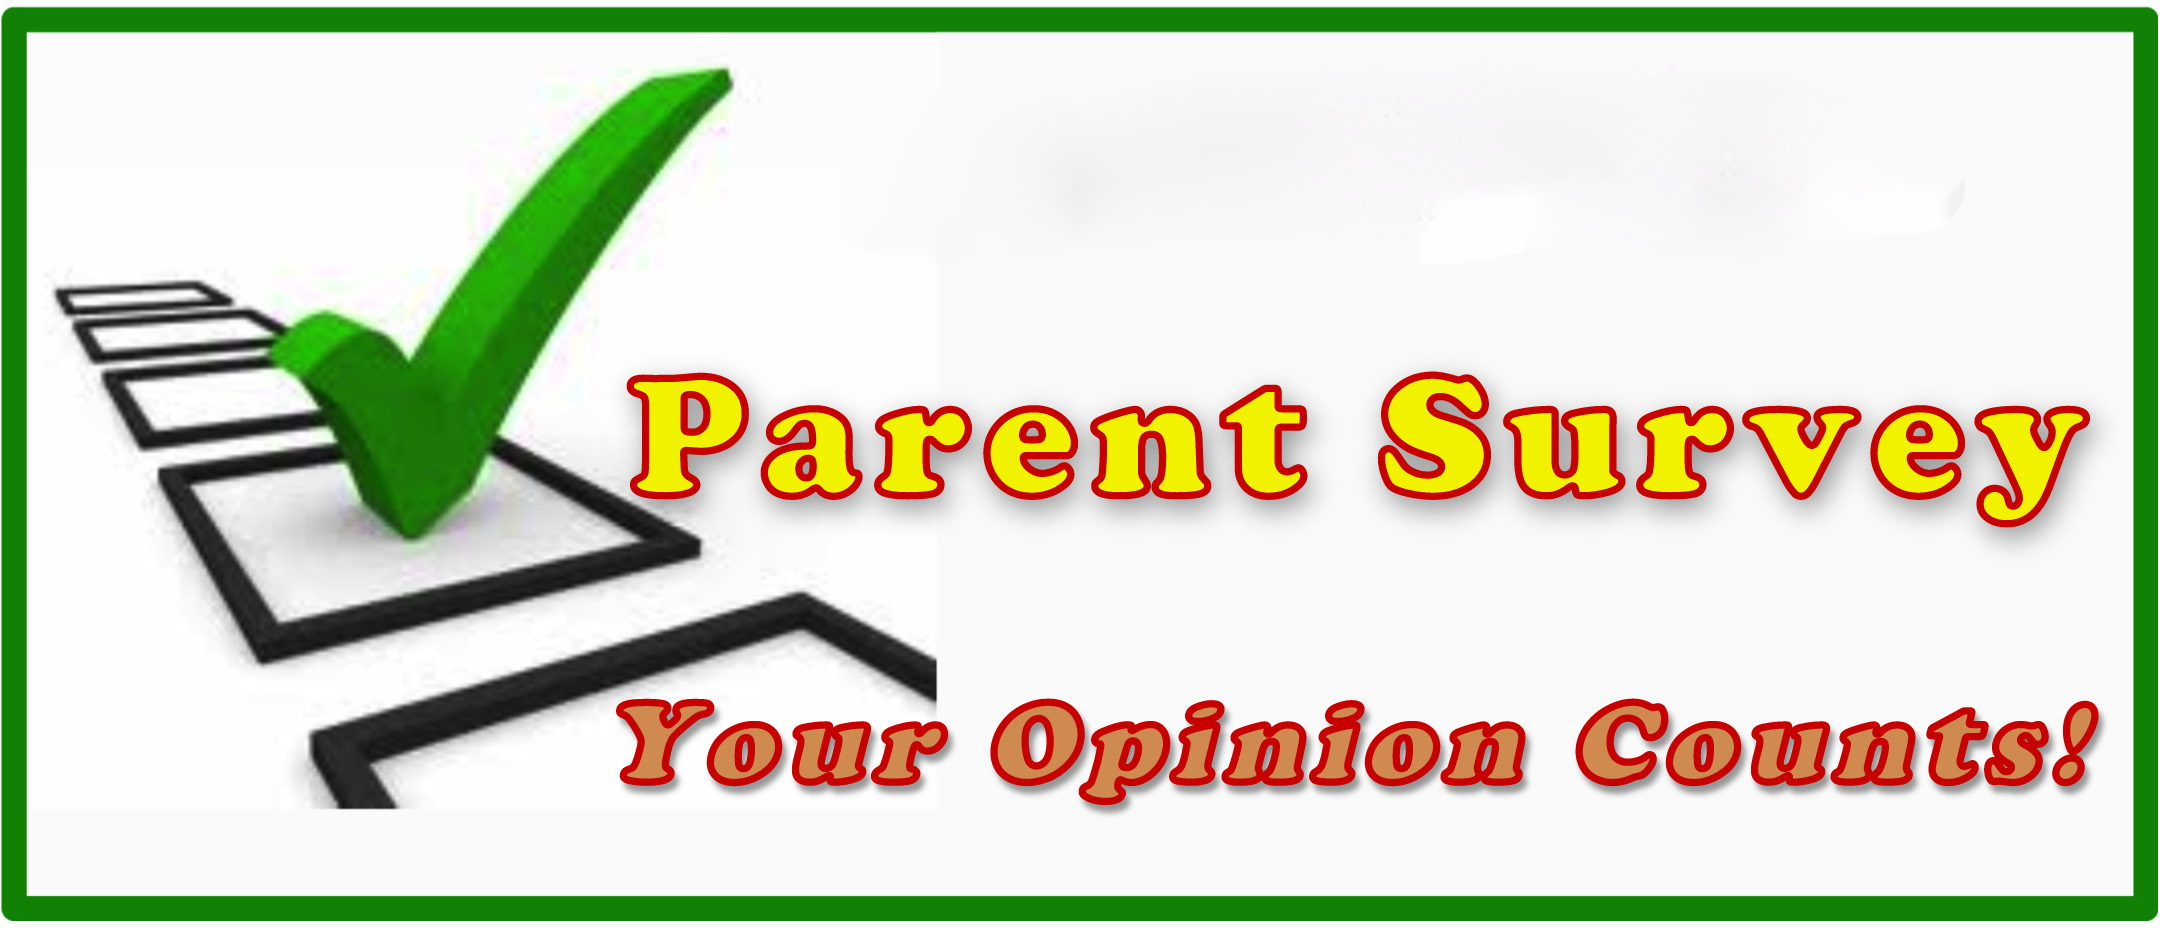 survey-clipart-parent-survey